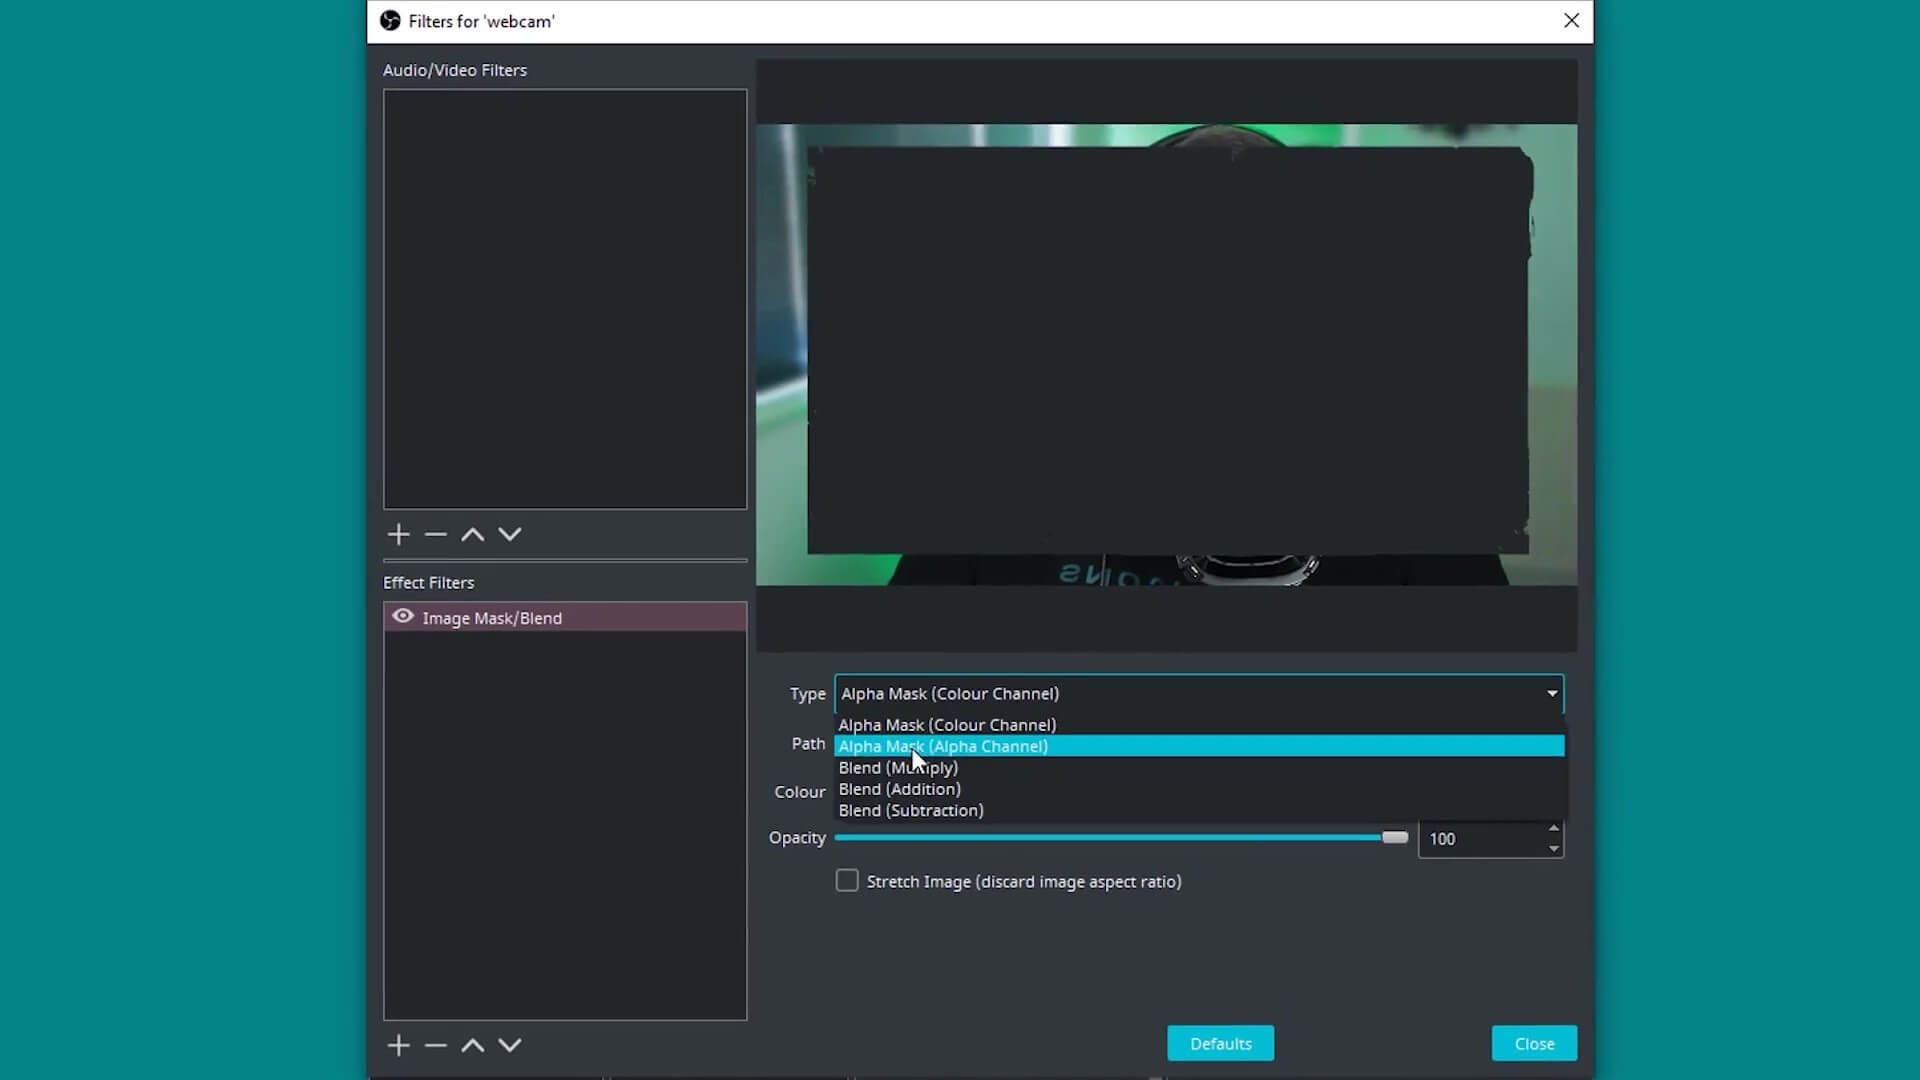 Adding an image mask in obs studio